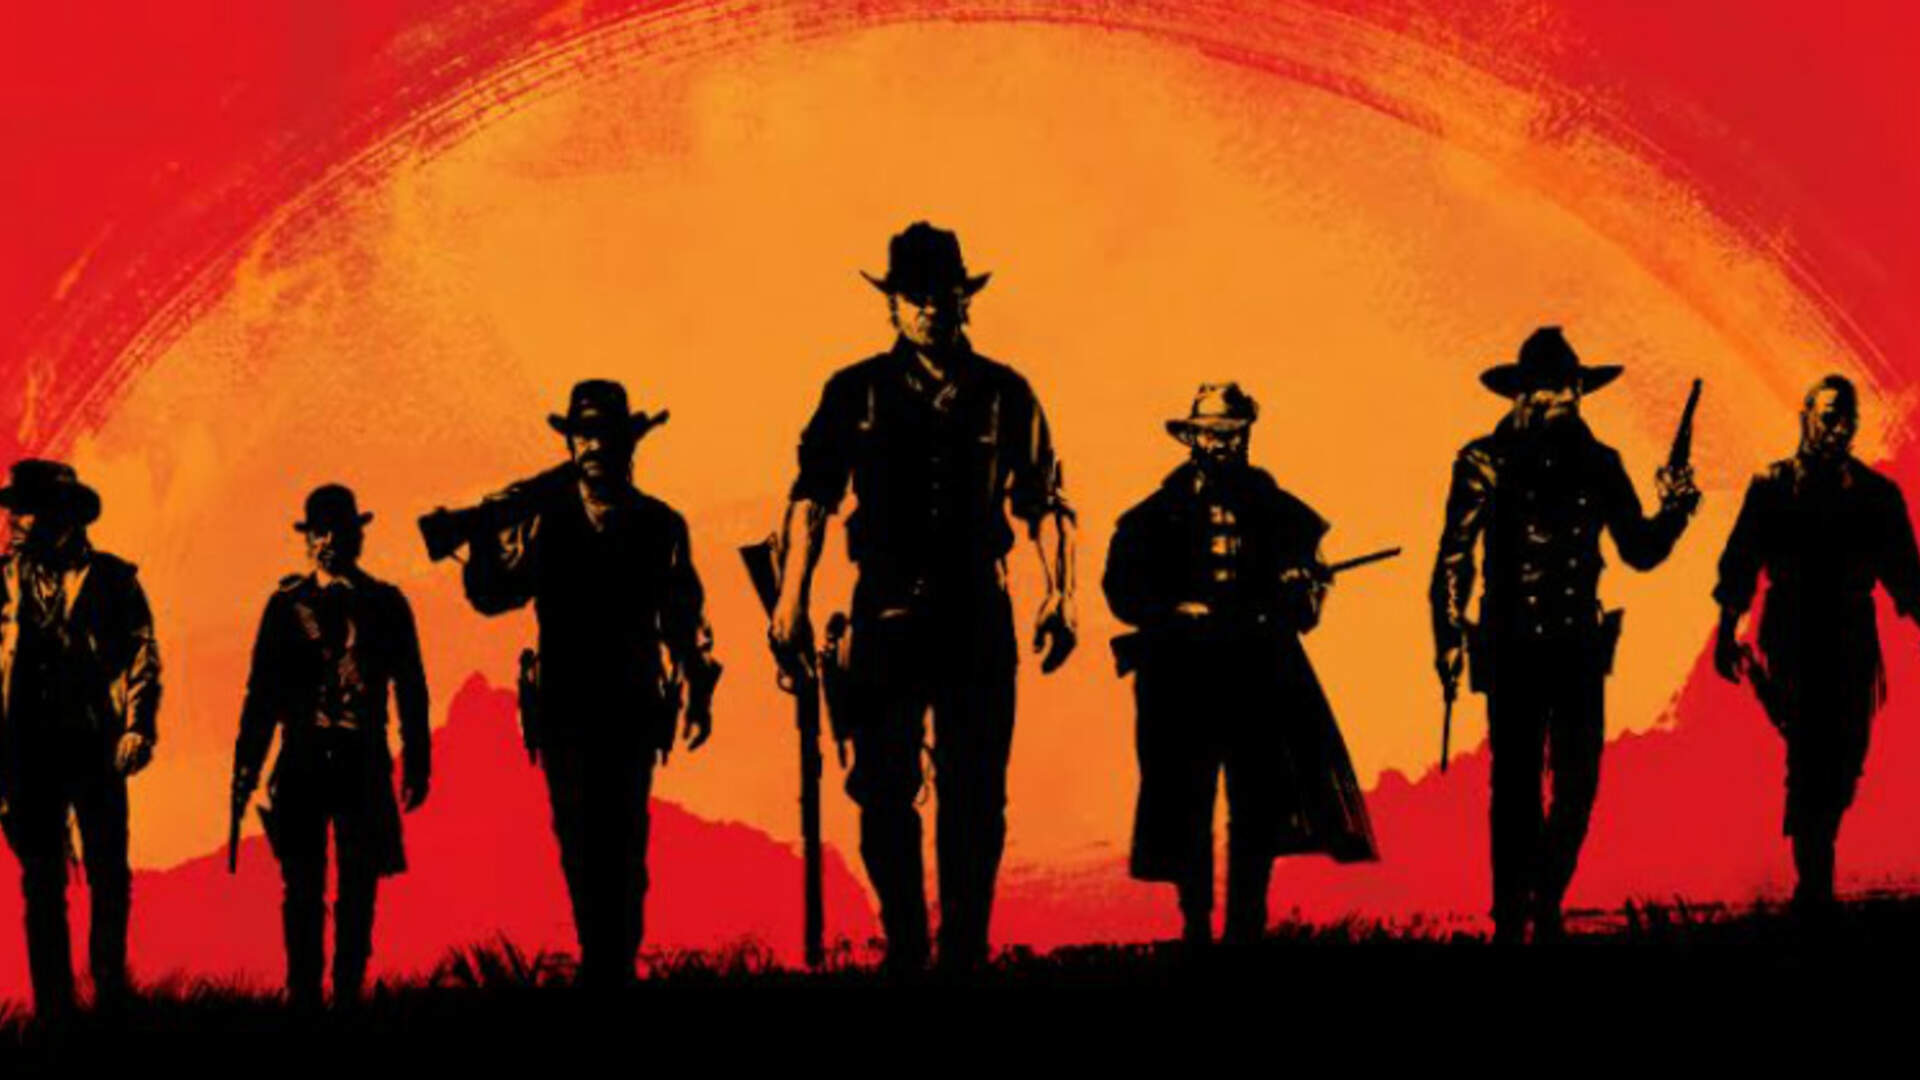 Red Dead Redemption 2 is Almost Certainly a Prequel